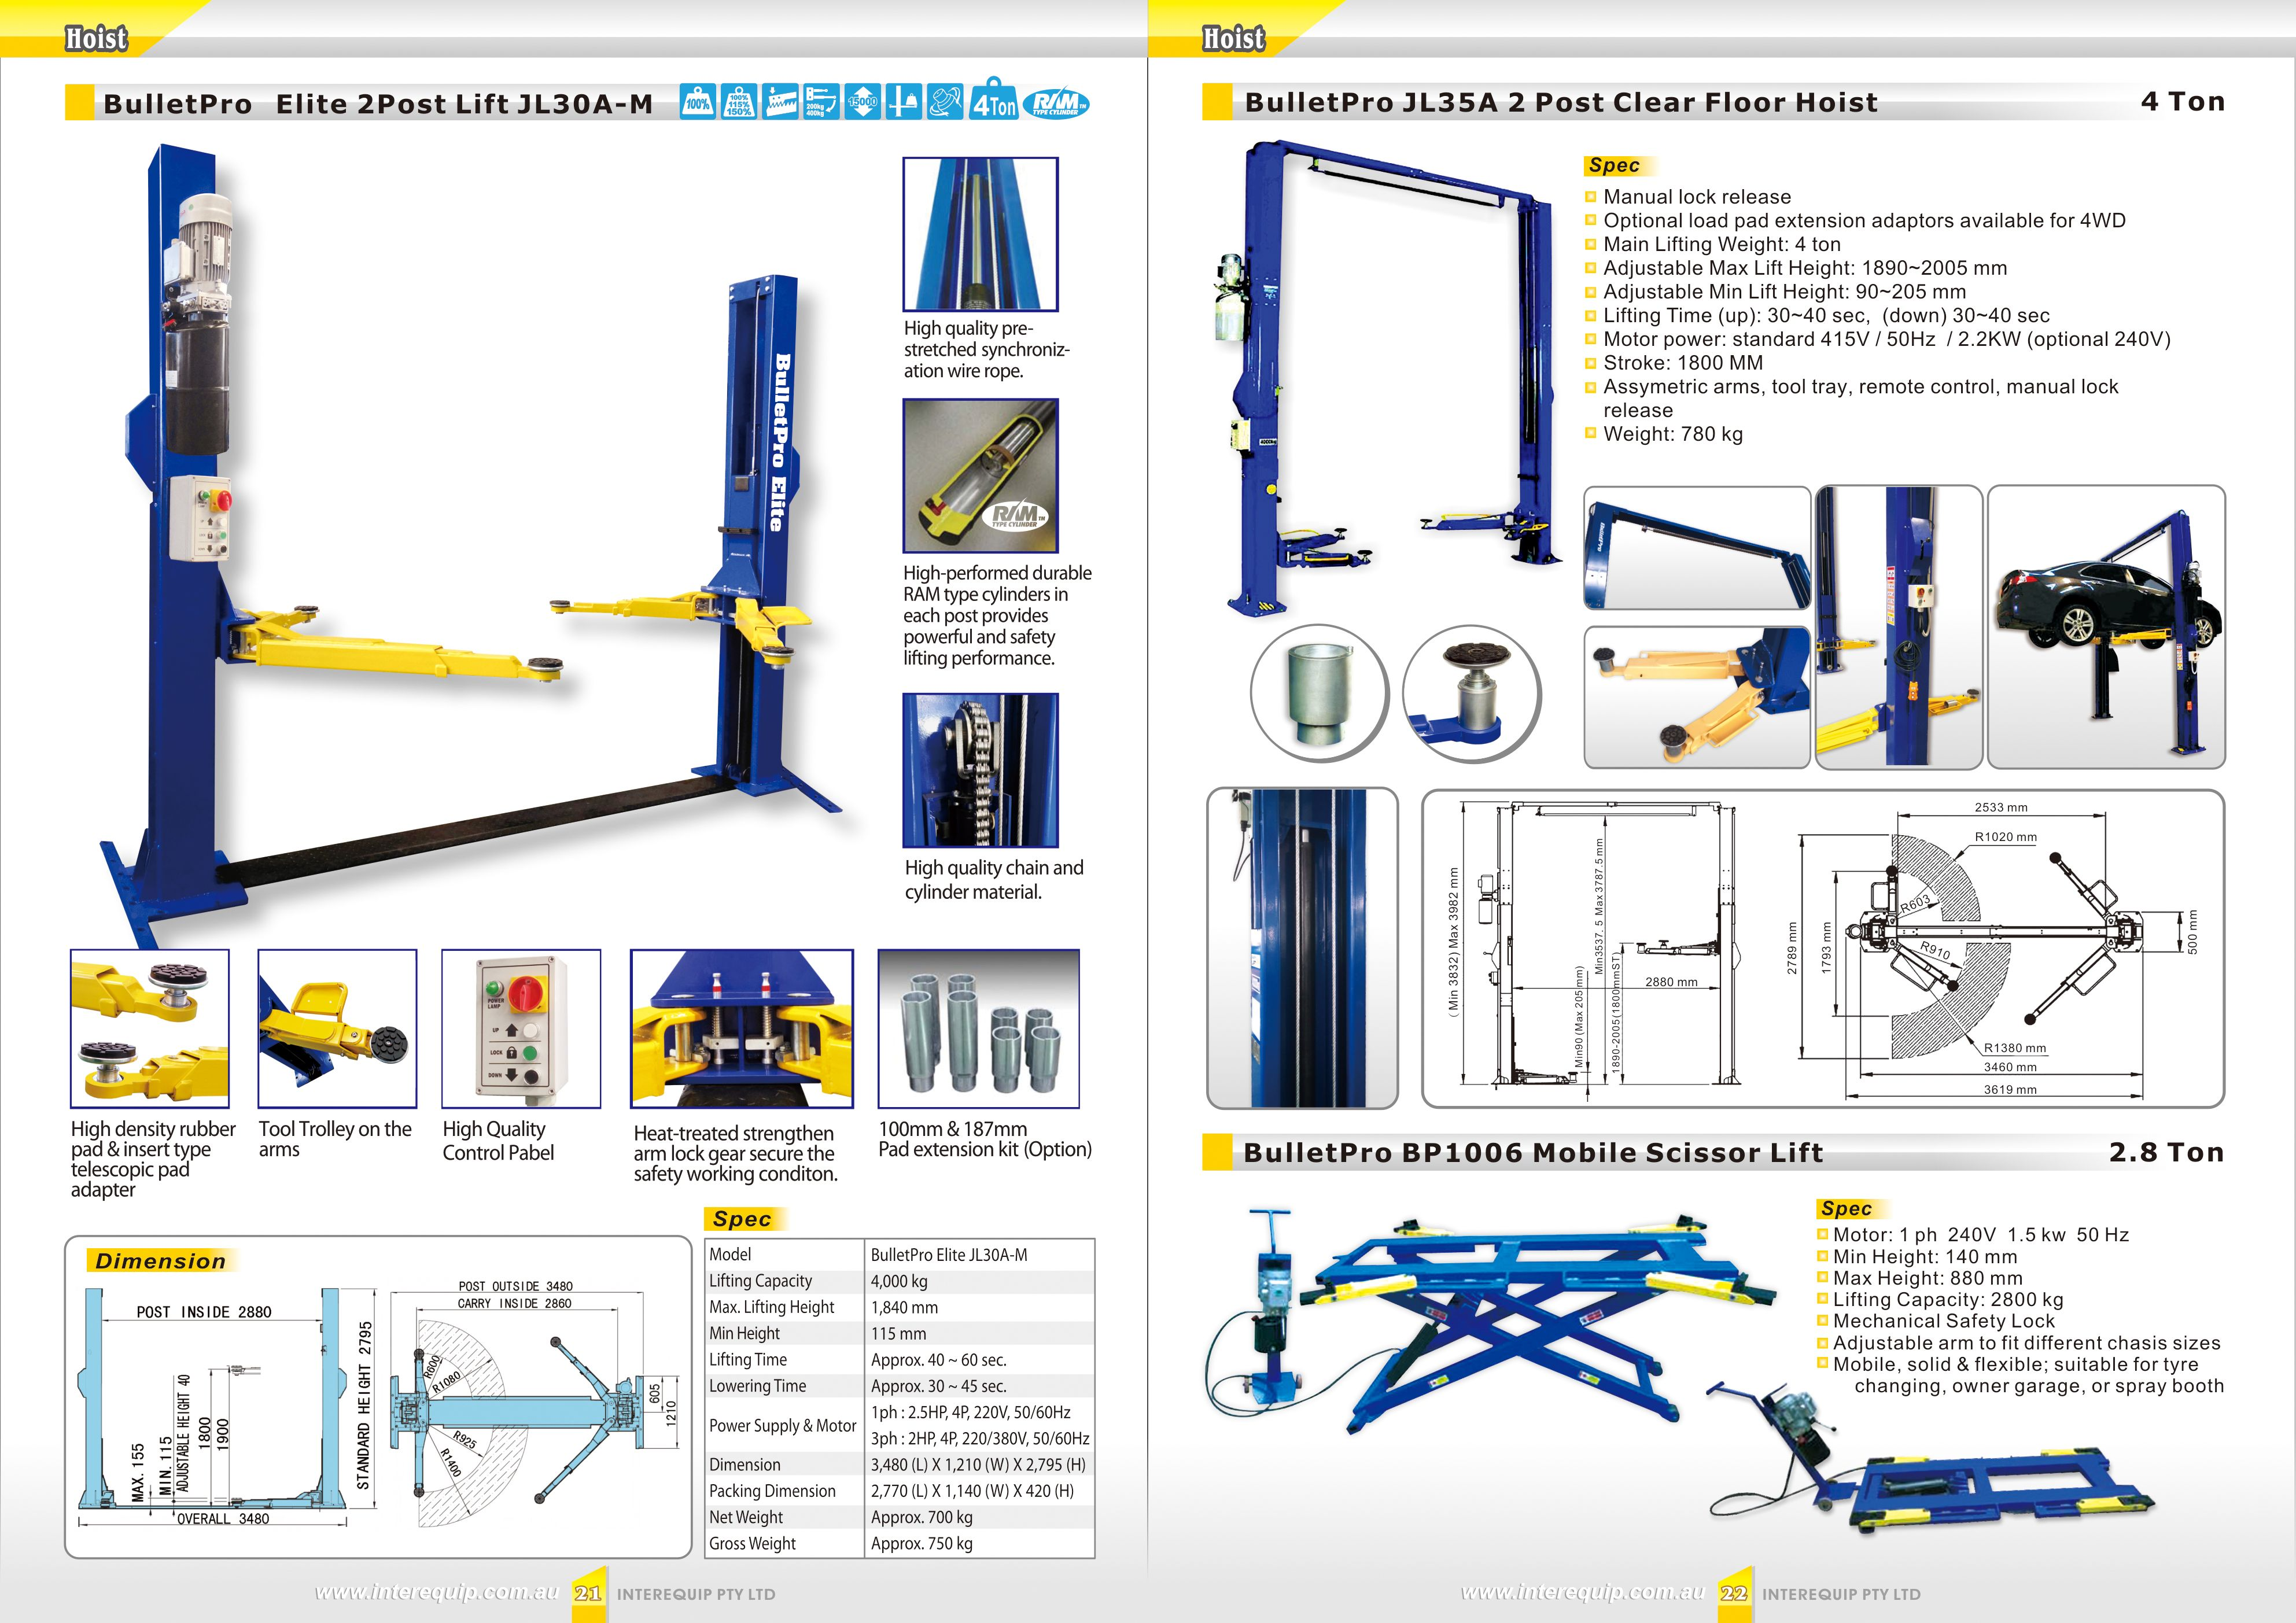 7c27ed8cbb1d2dbe3d20d073f4175f3b hoist bulletpro elite 2 post lift jl30a m (4 ton) bulletpro Basic Electrical Wiring Diagrams at webbmarketing.co